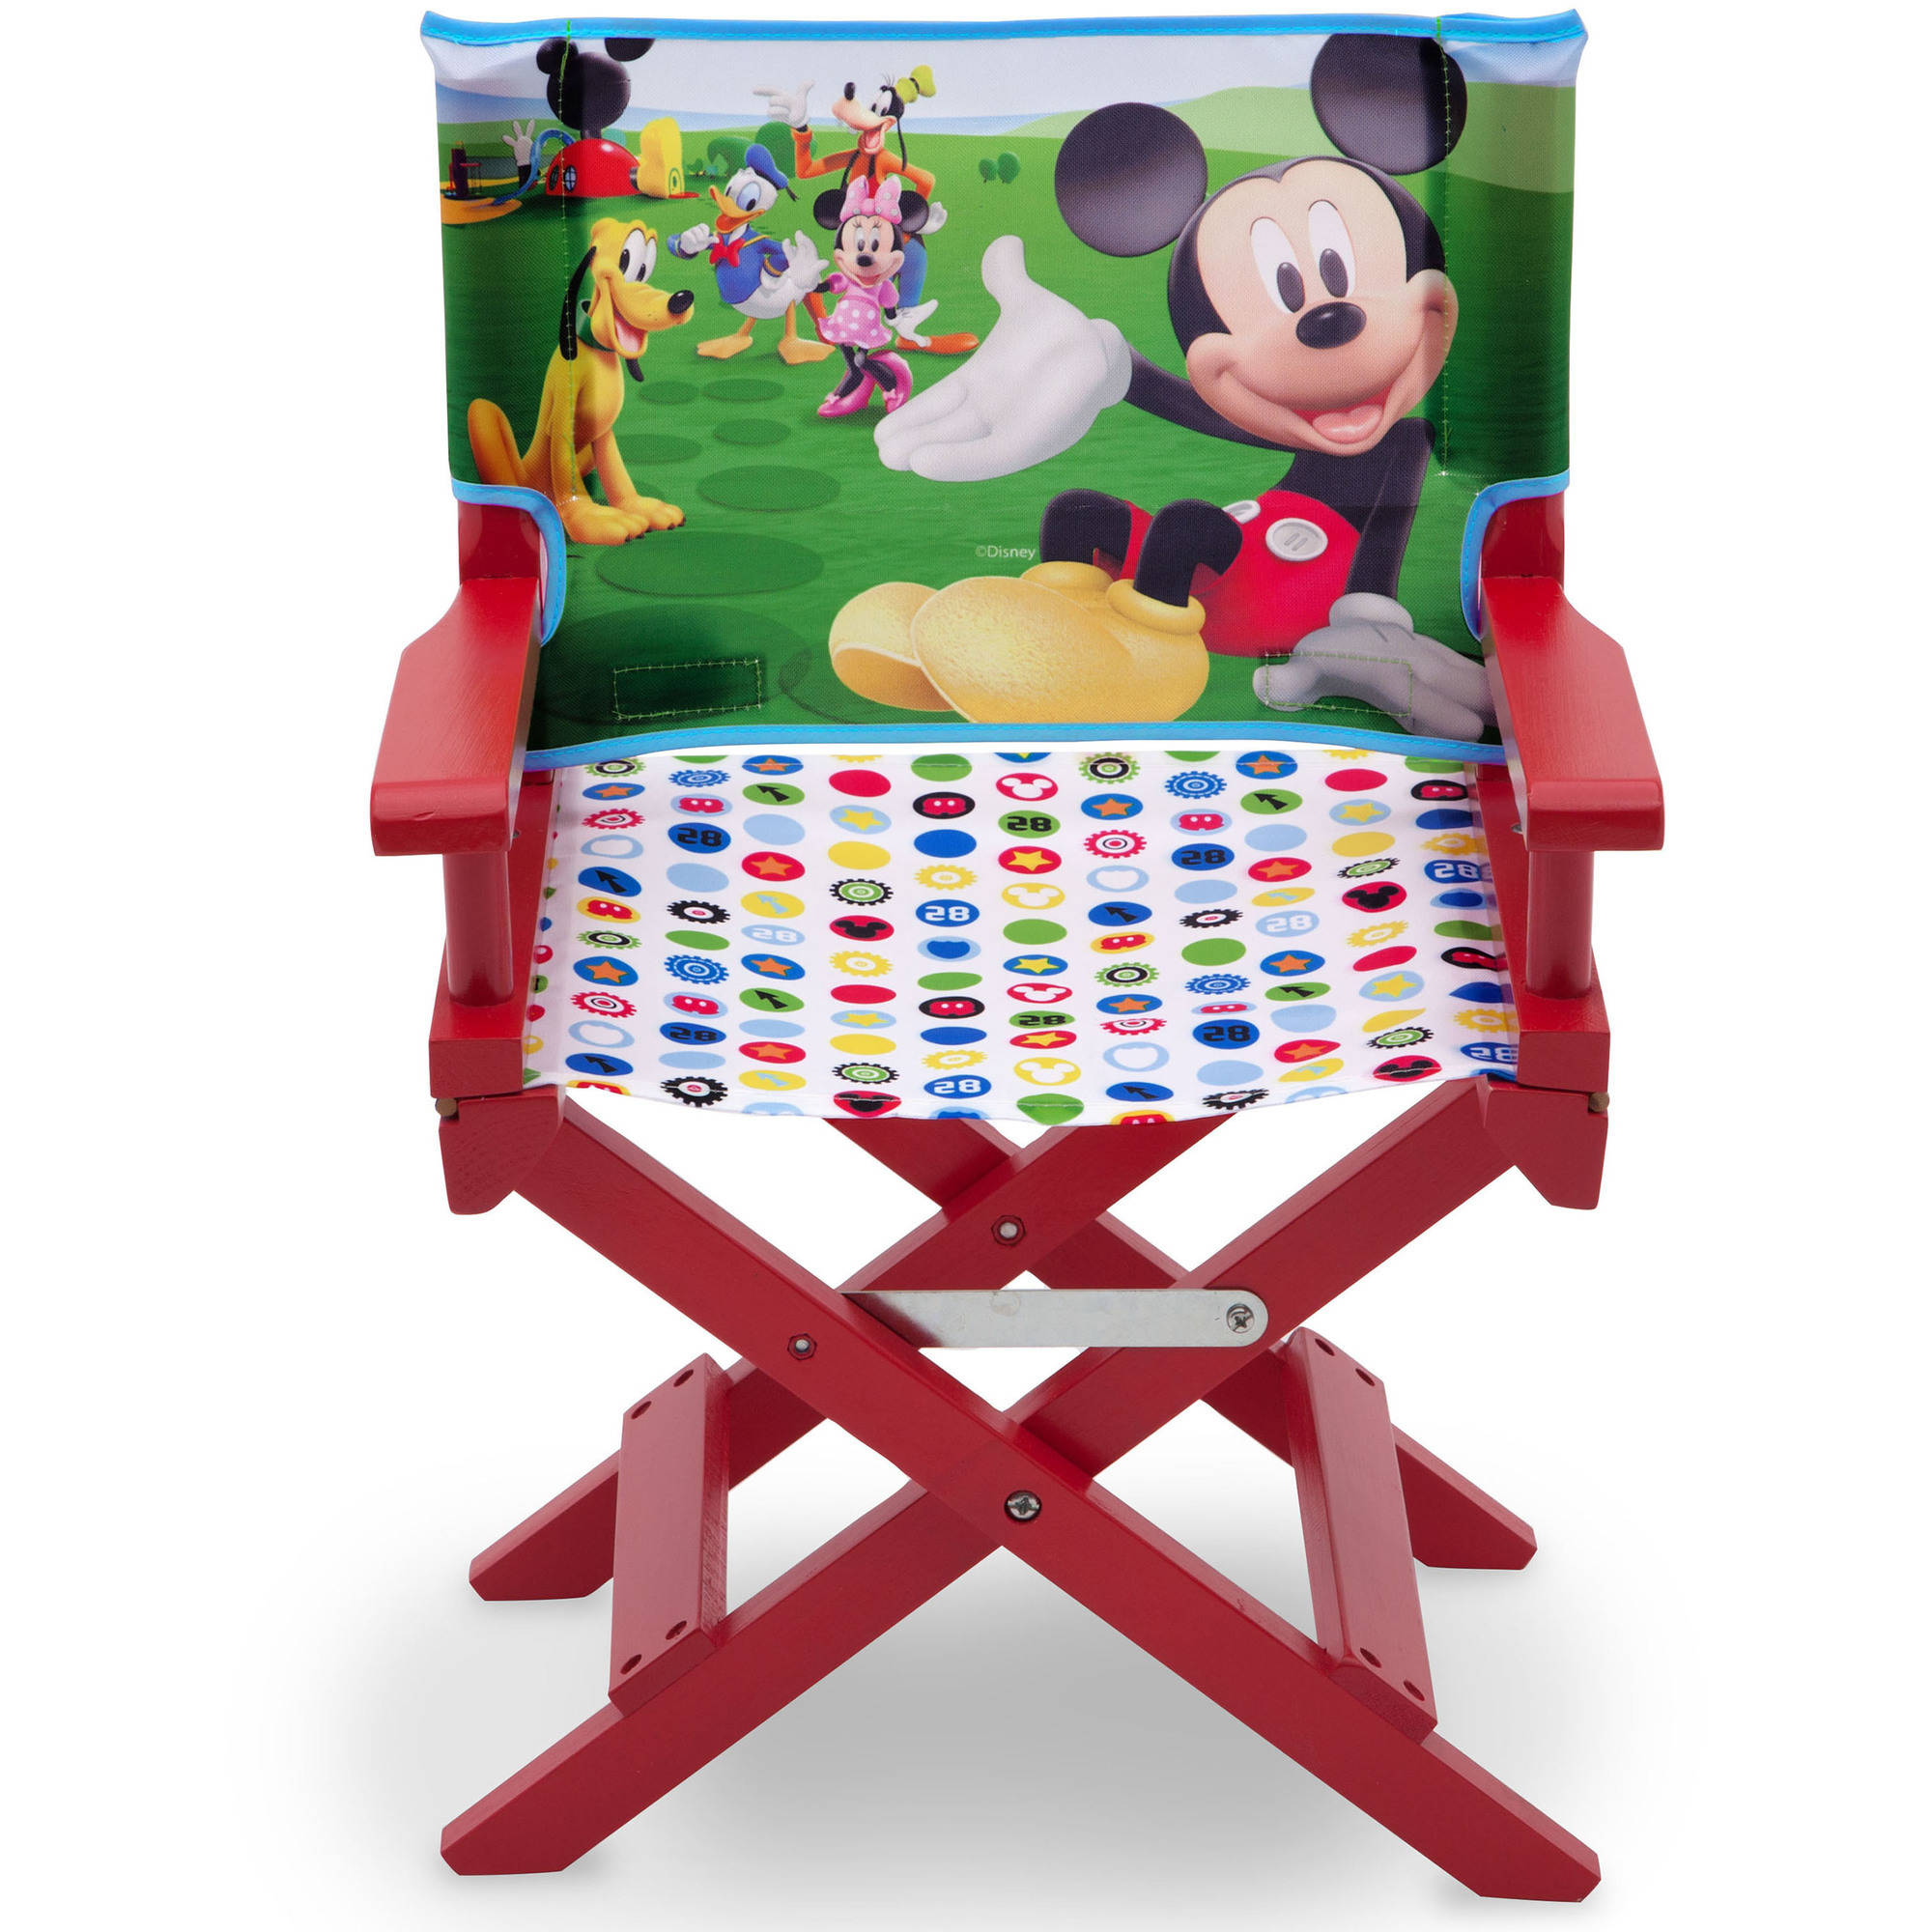 Disney Mickey Mouse Director's Chair by Disney